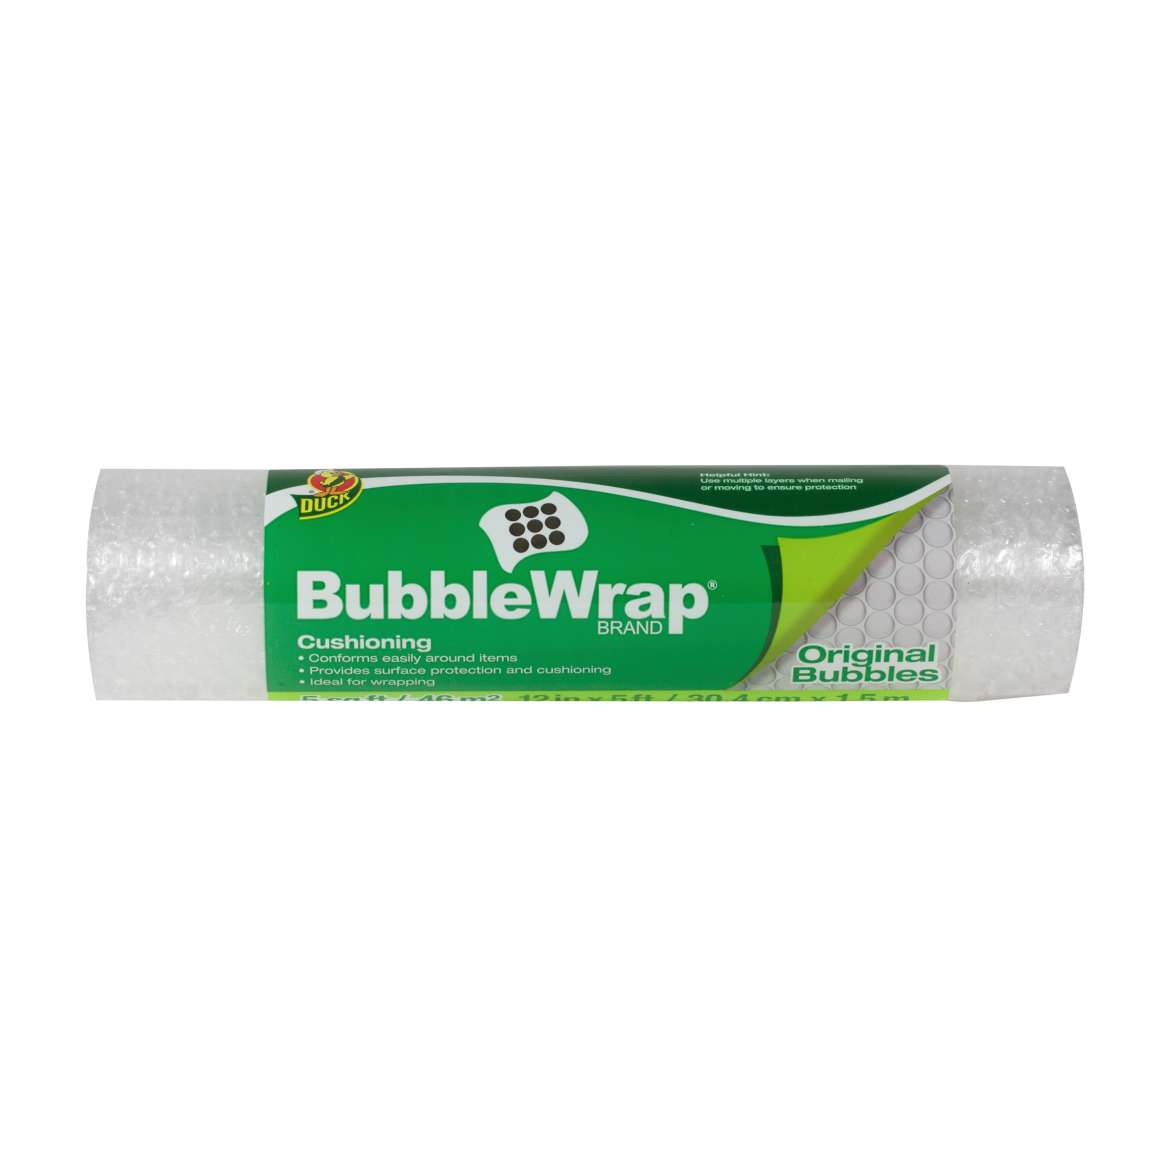 Duck® Brand Original Bubble Wrap® Cushioning - Clear, 12 in. x 5 ft. Image